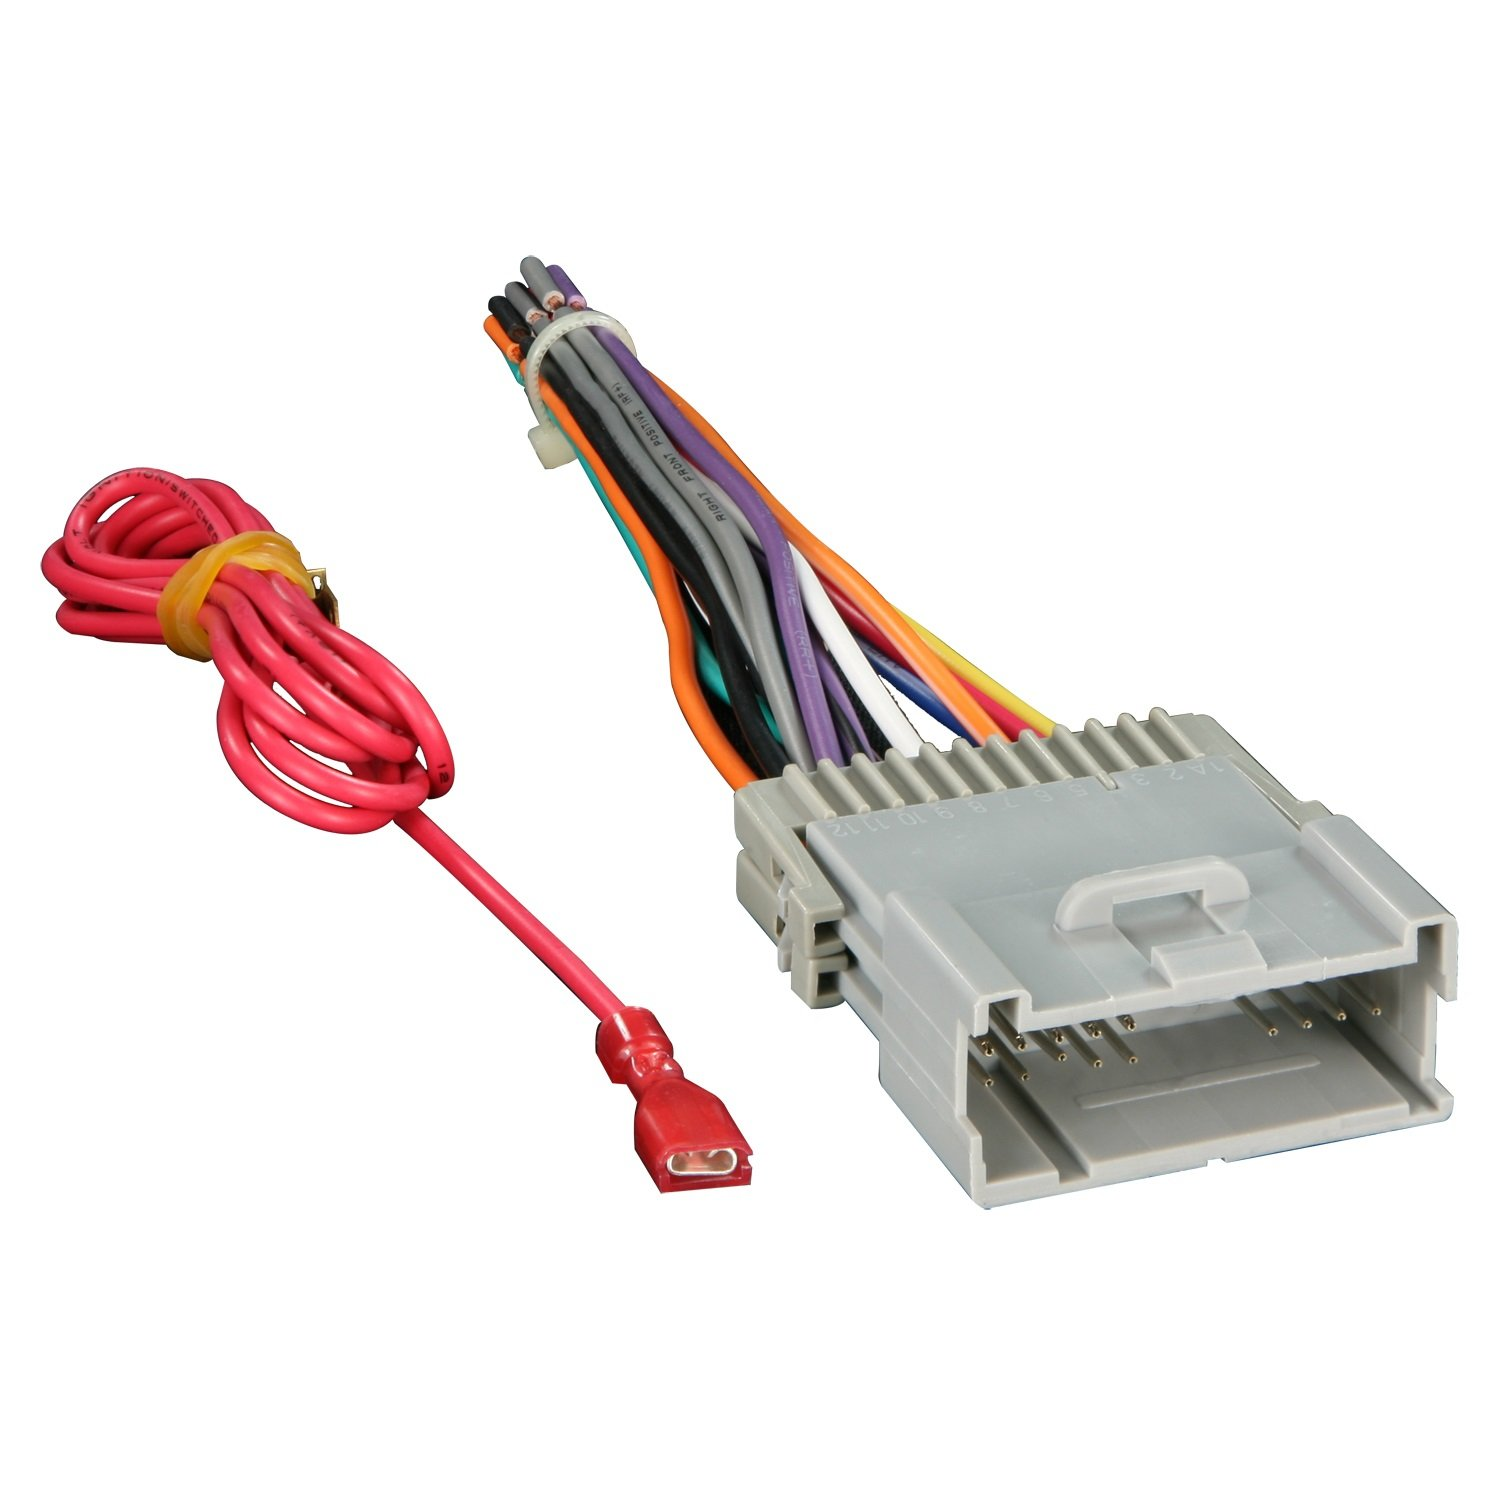 61eewxp9orL._SL1500_ amazon com metra 70 2003 radio wiring harness for gm 98 08 GM Wiring Color Codes at metegol.co